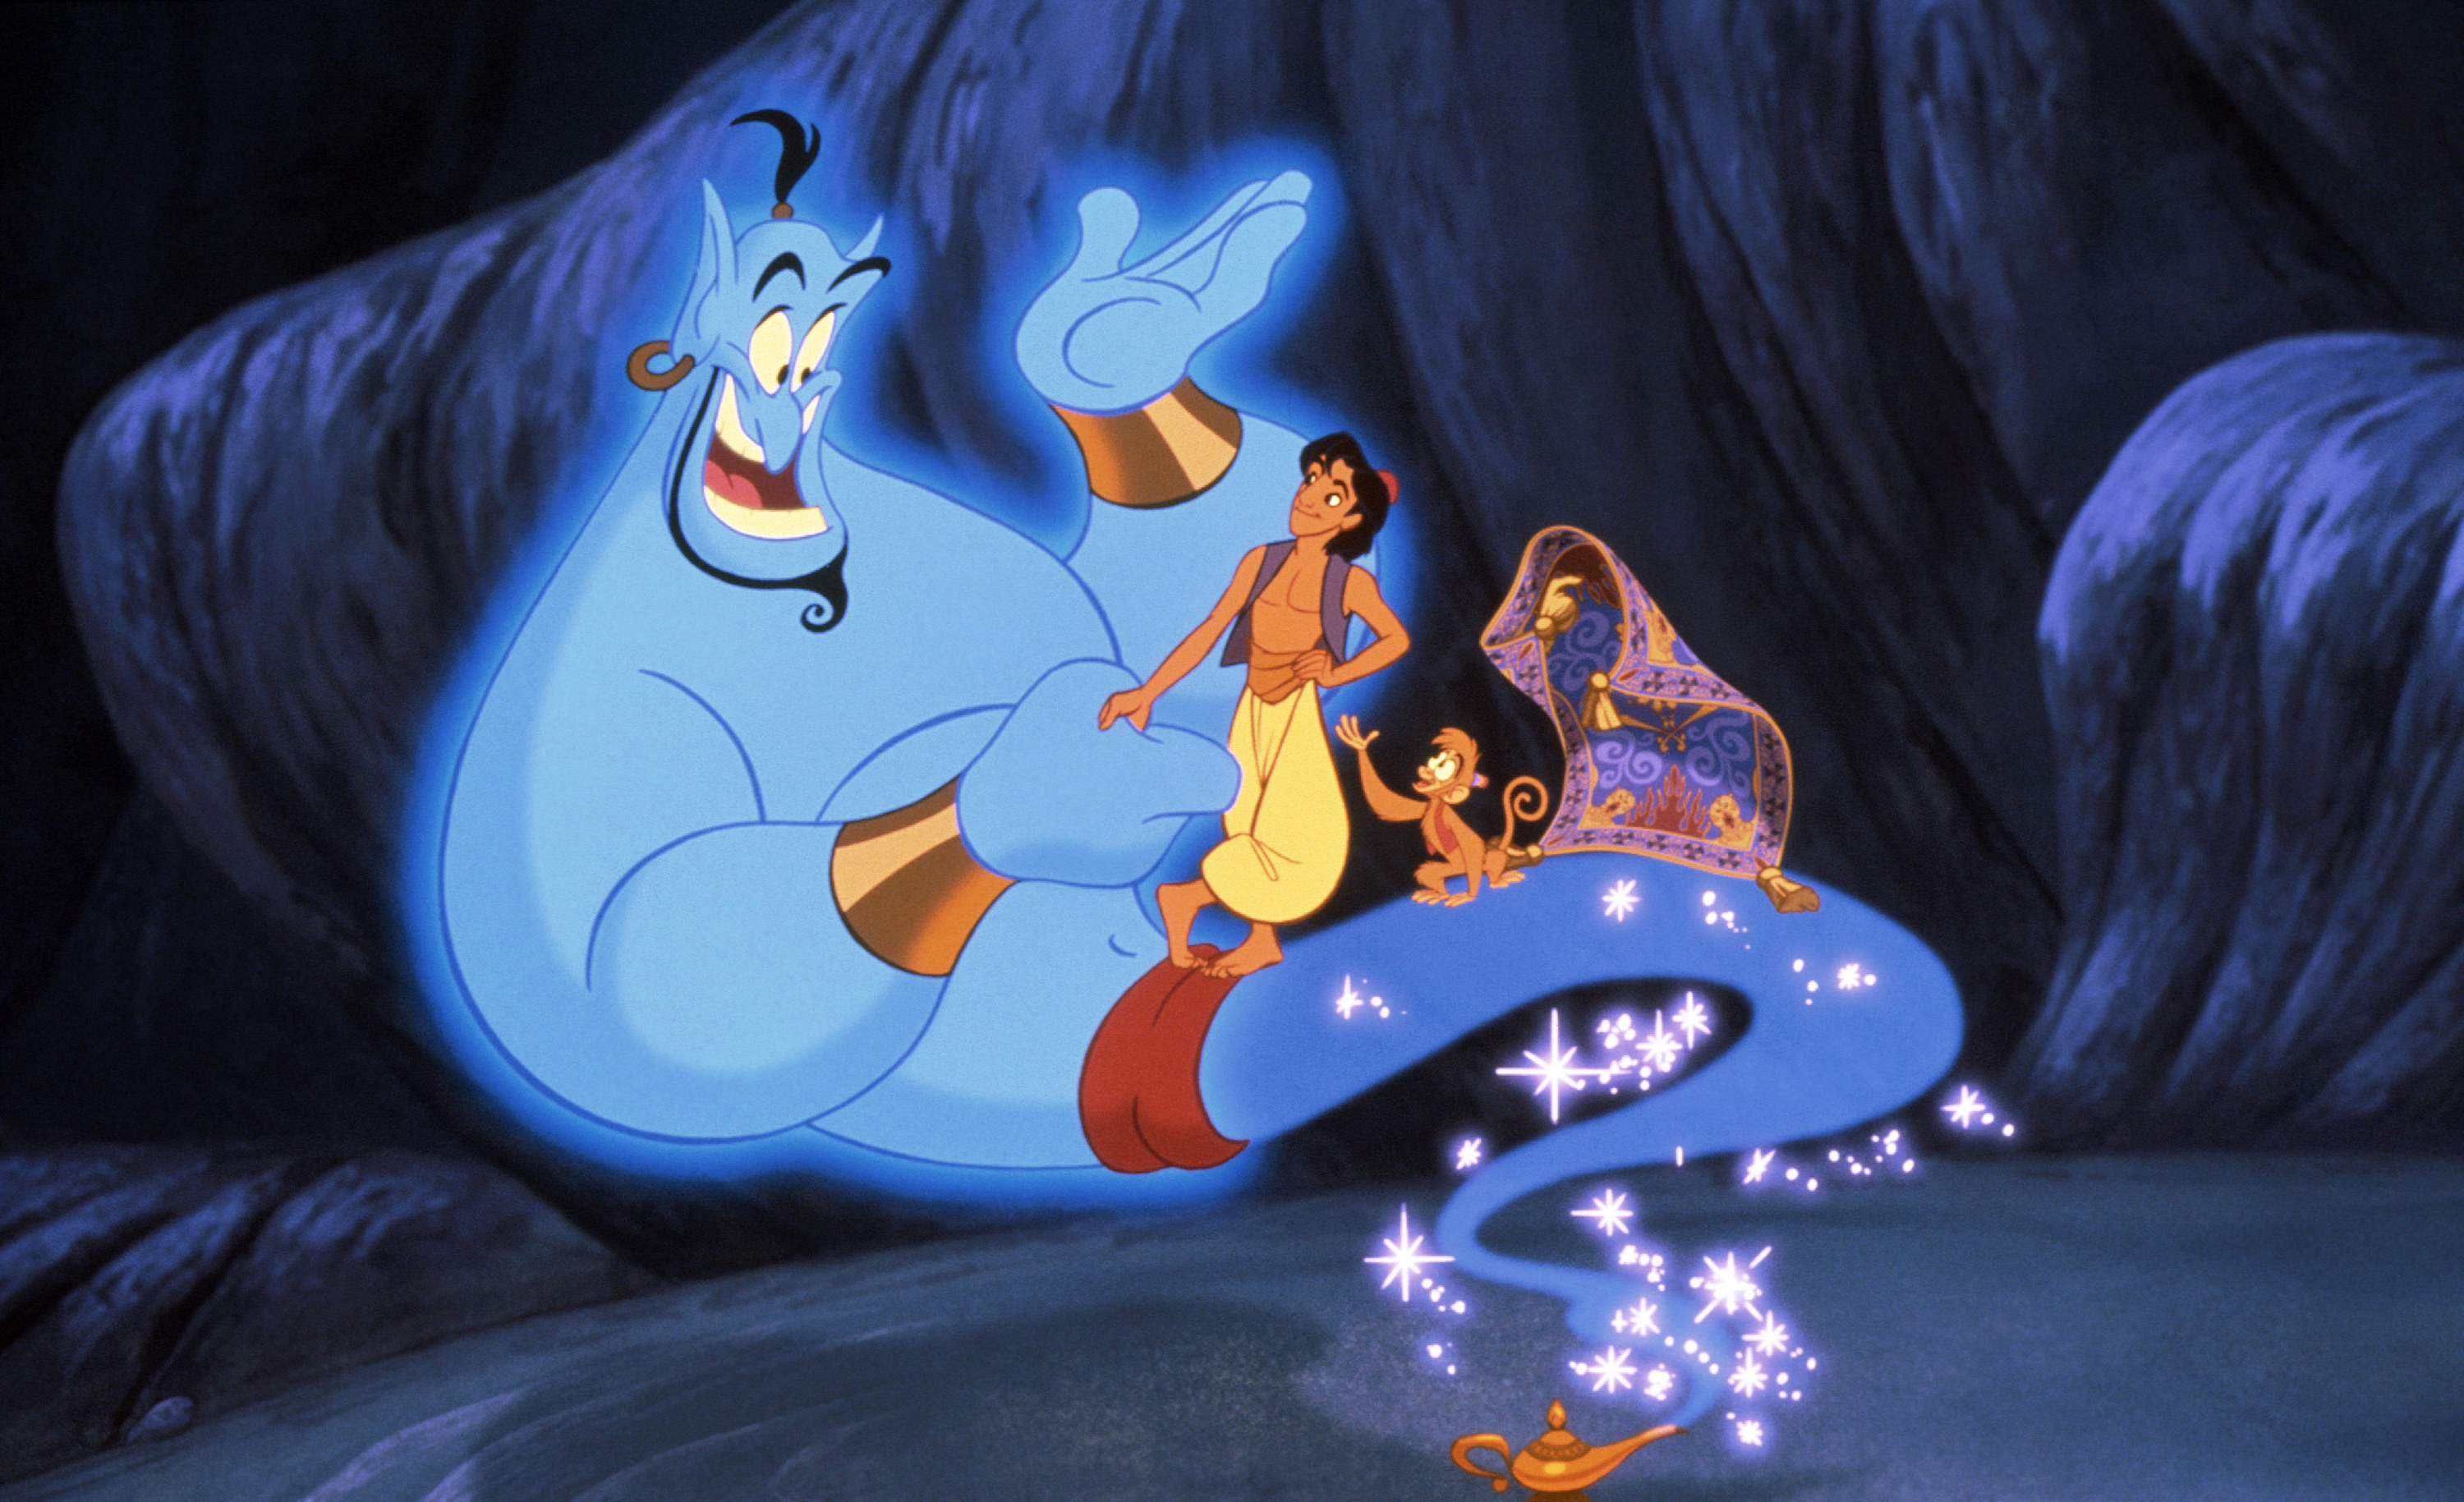 """The Genie, Aladdin, and Abo in the cave of wonders from """"Aladdin"""" (1992)"""